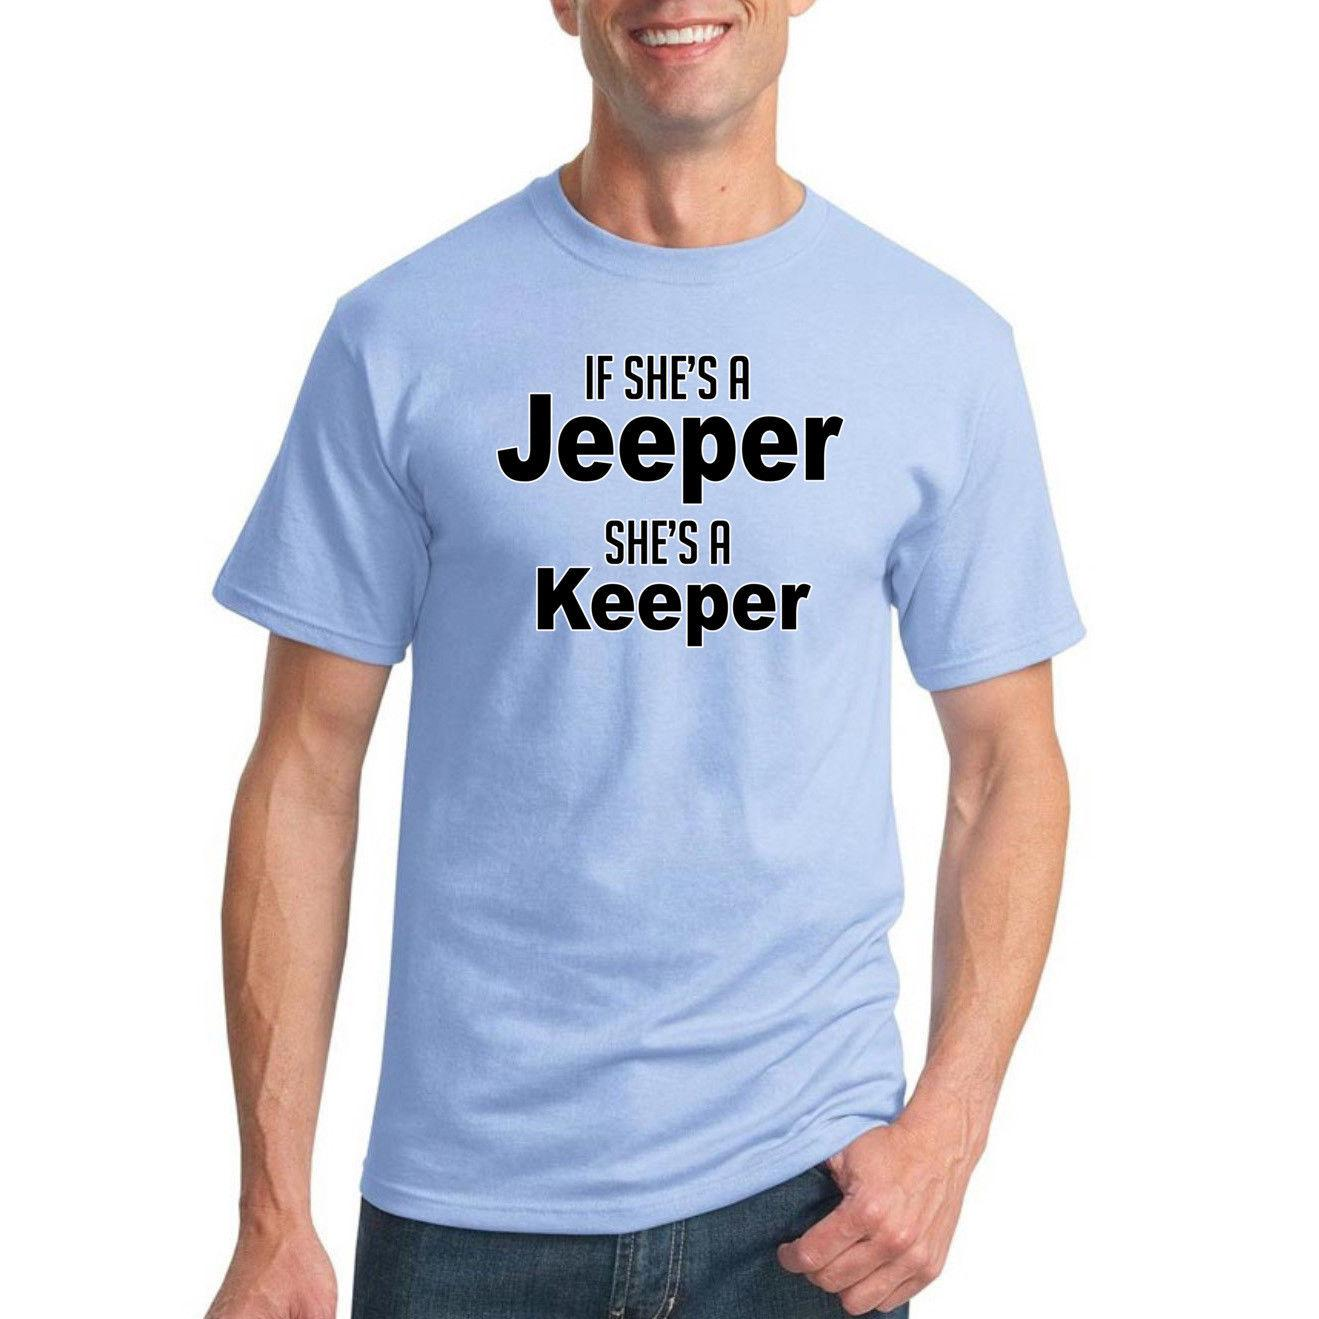 de3b617f9 If She's a She's A Keeper Mens Humor T-Shirt Funny Jeep Fan Novelty Tee  Funny free shipping Unisex Casual tee top